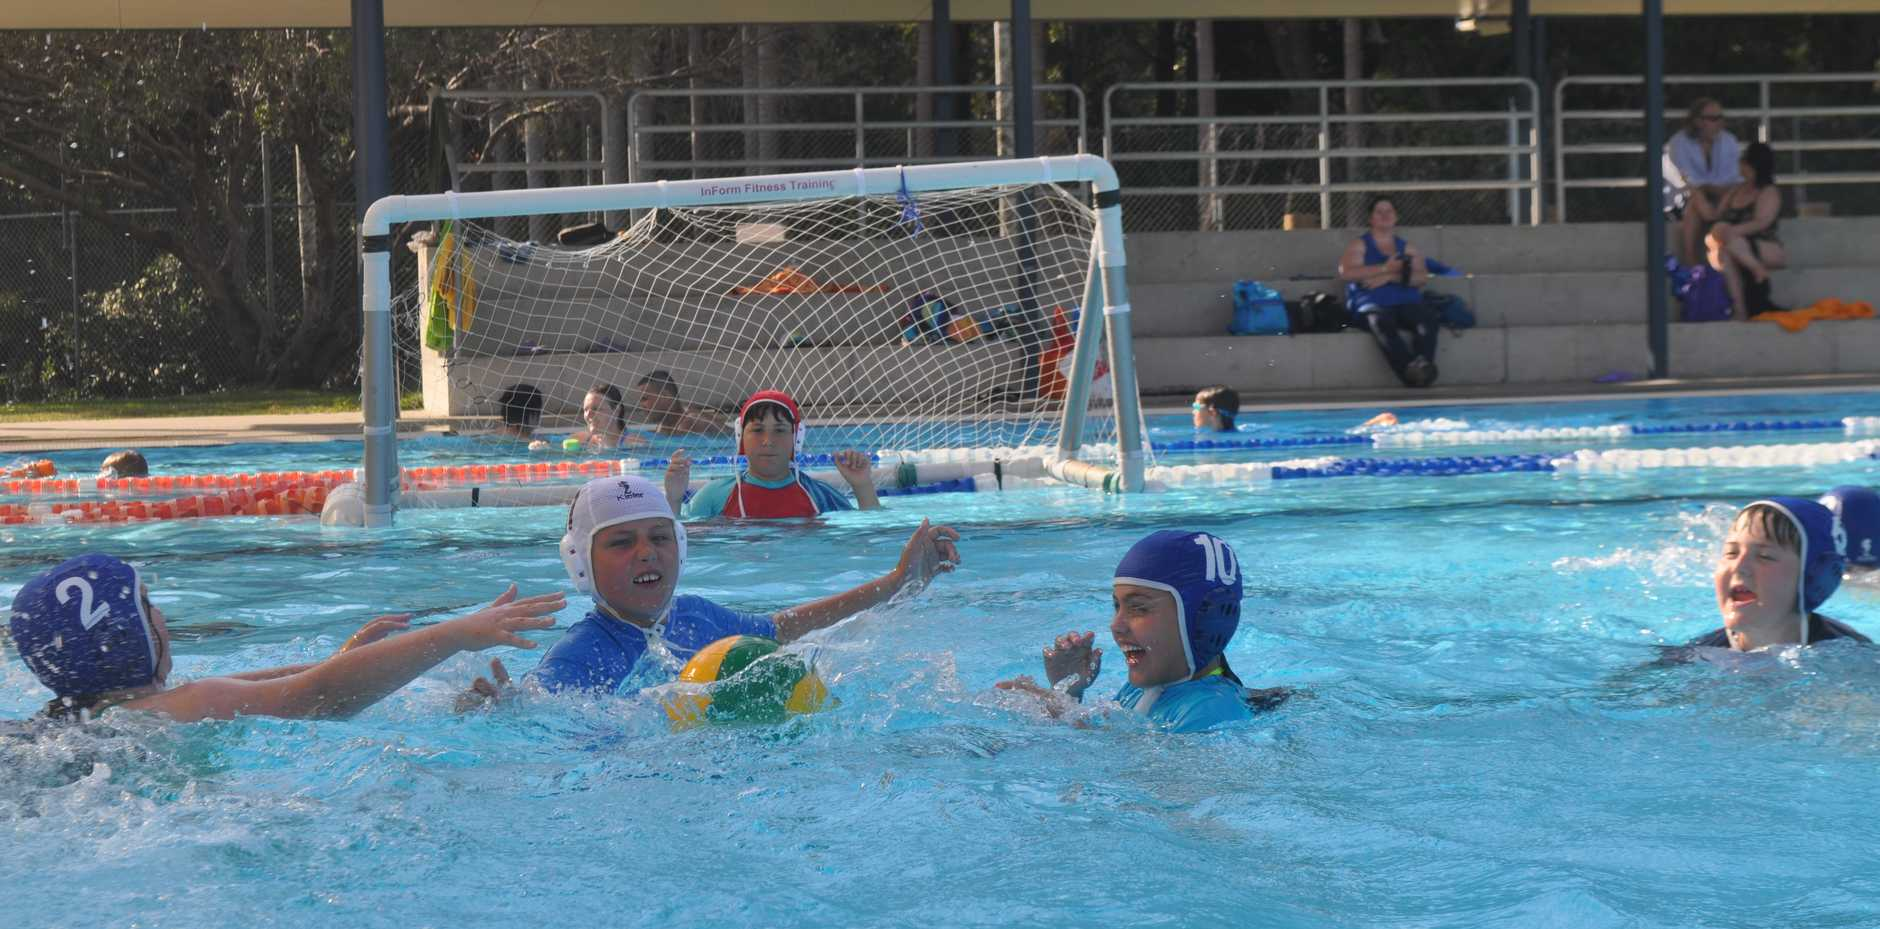 Kids can experience the entry level to water polo this Sunday at Coffs Harbour War Memorial Olympic Pool.